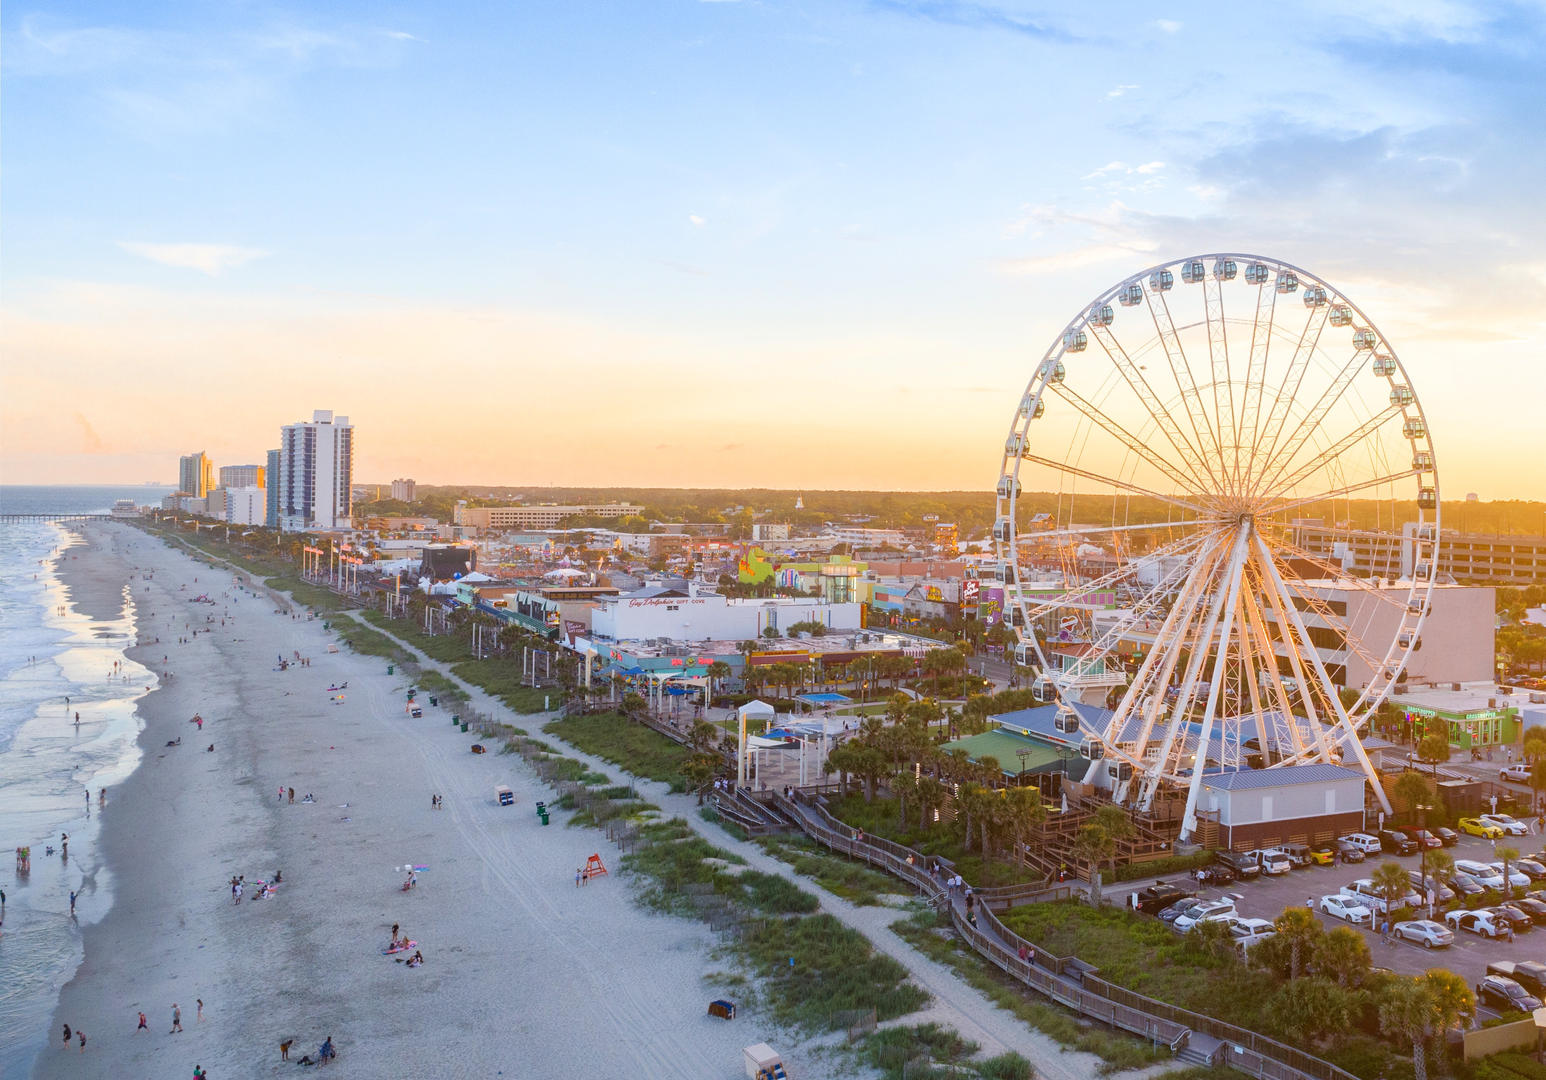 Myrtle Beach Sky Wheel from a drone's perspective.